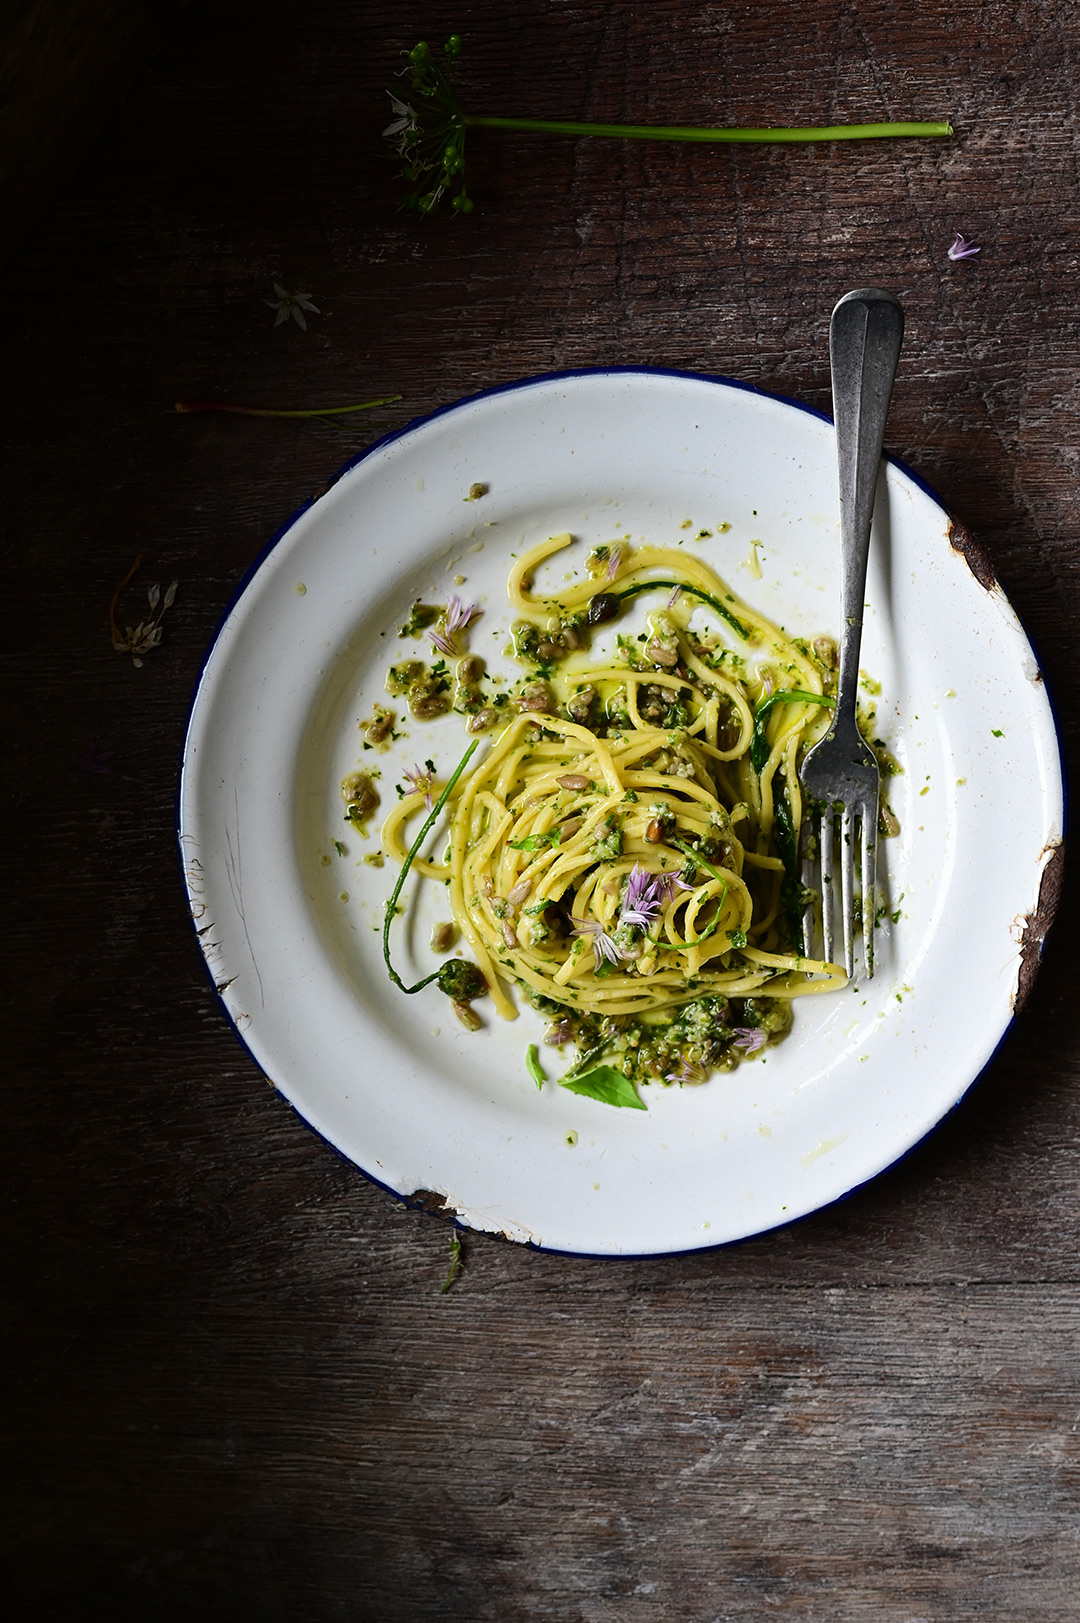 serving dumplings | Spring pasta with wild garlic pesto